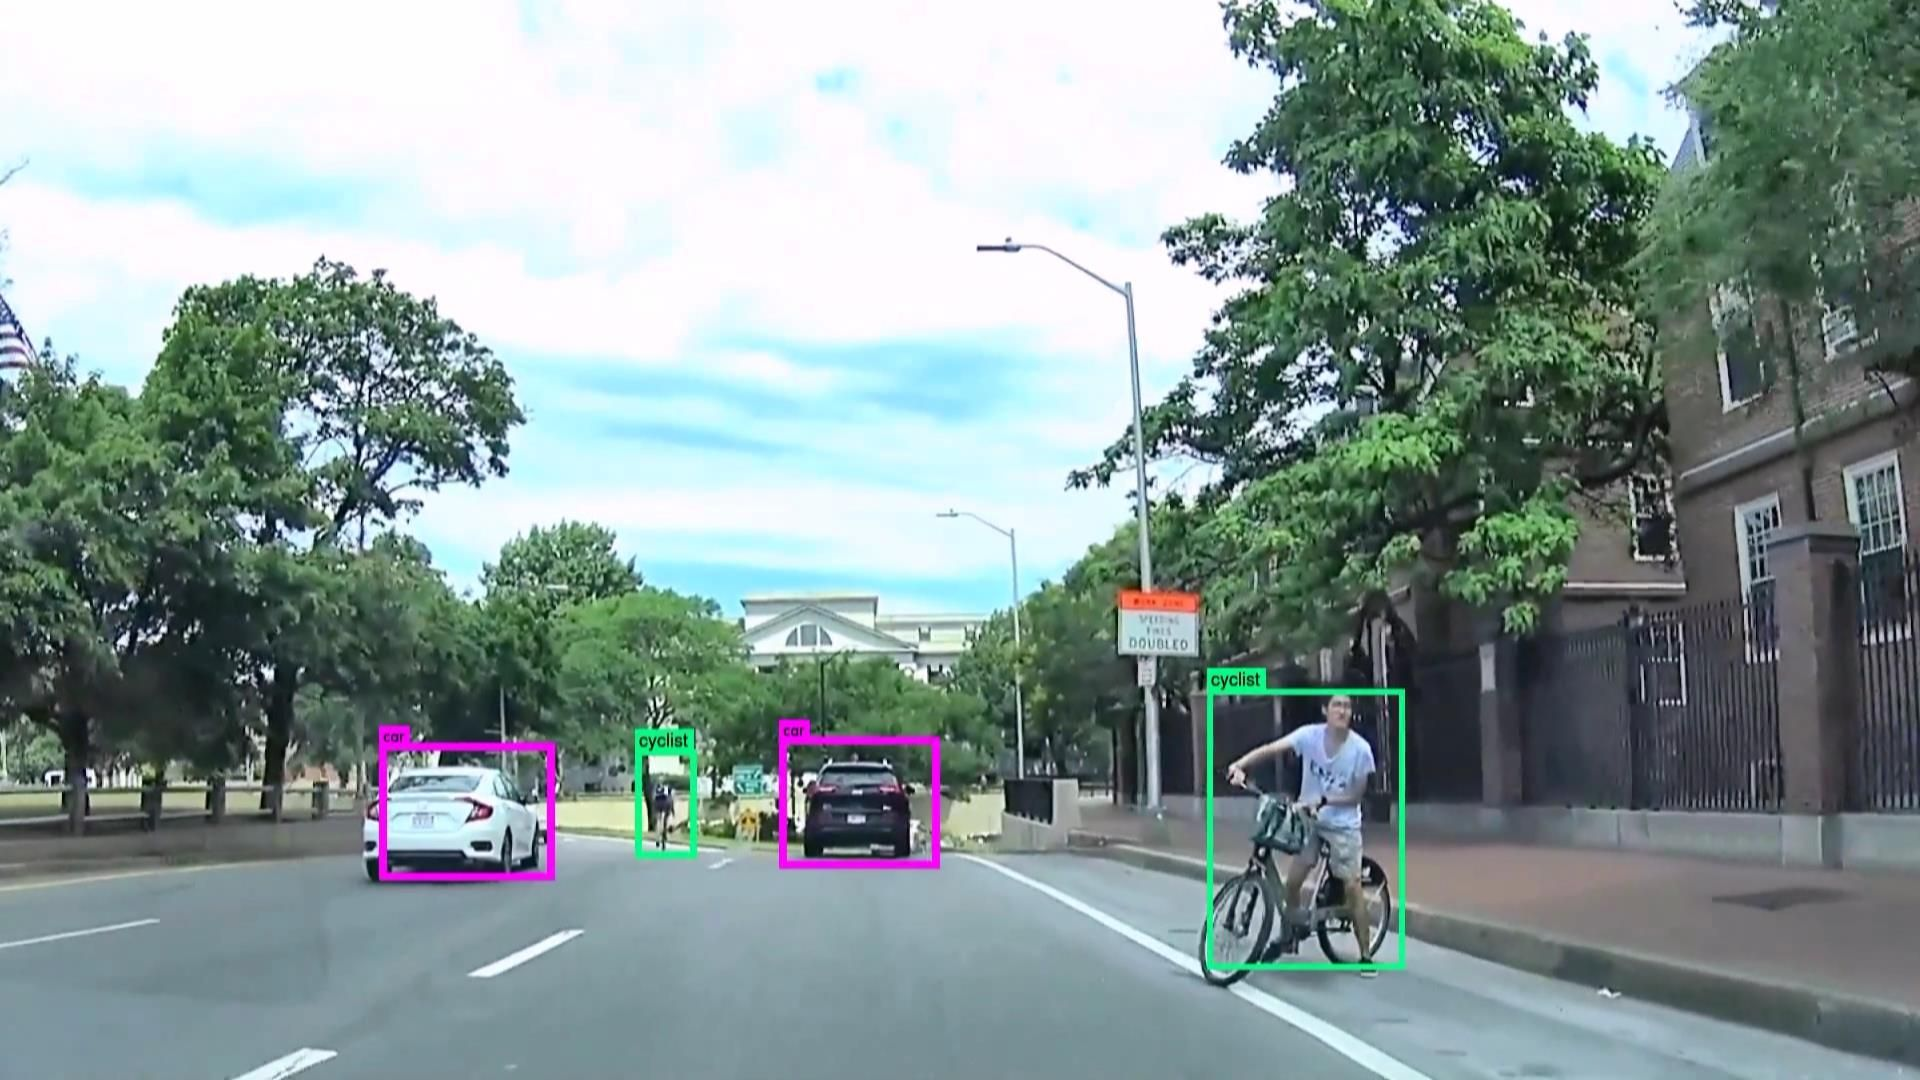 Neurala's AI system can identify pedestrians, cars, cyclists, and trucks in real time.